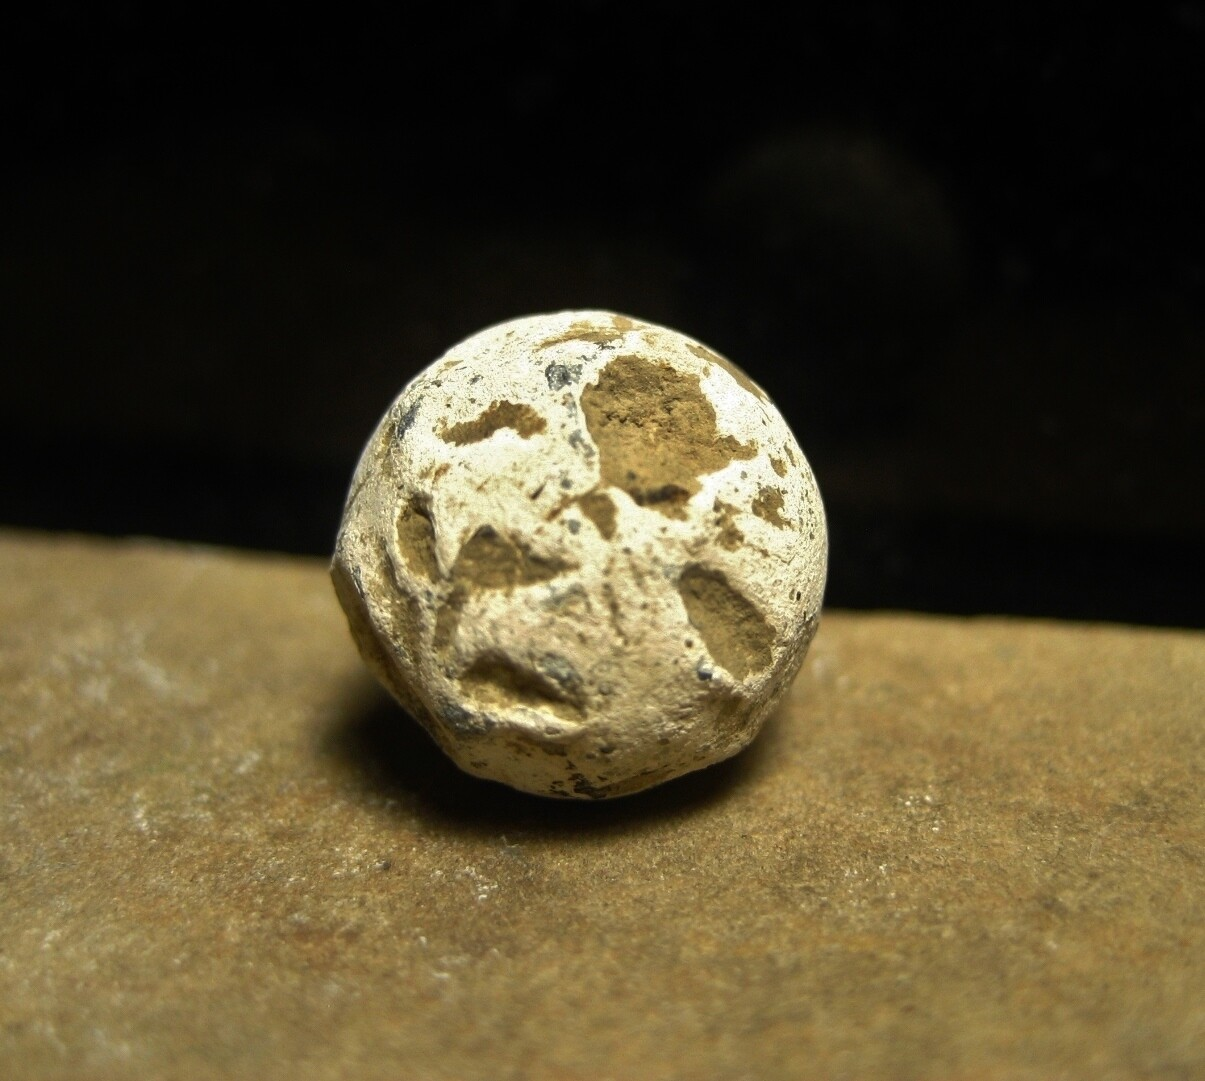 JUST ADDED ON 9/12 - BATTLE OF GETTYSBURG / PICKETT'S CHARGE / ROSENSTEEL COLLECTION - .54 Caliber Musket Ball or Case Shot found by John Cullison 1930-1960